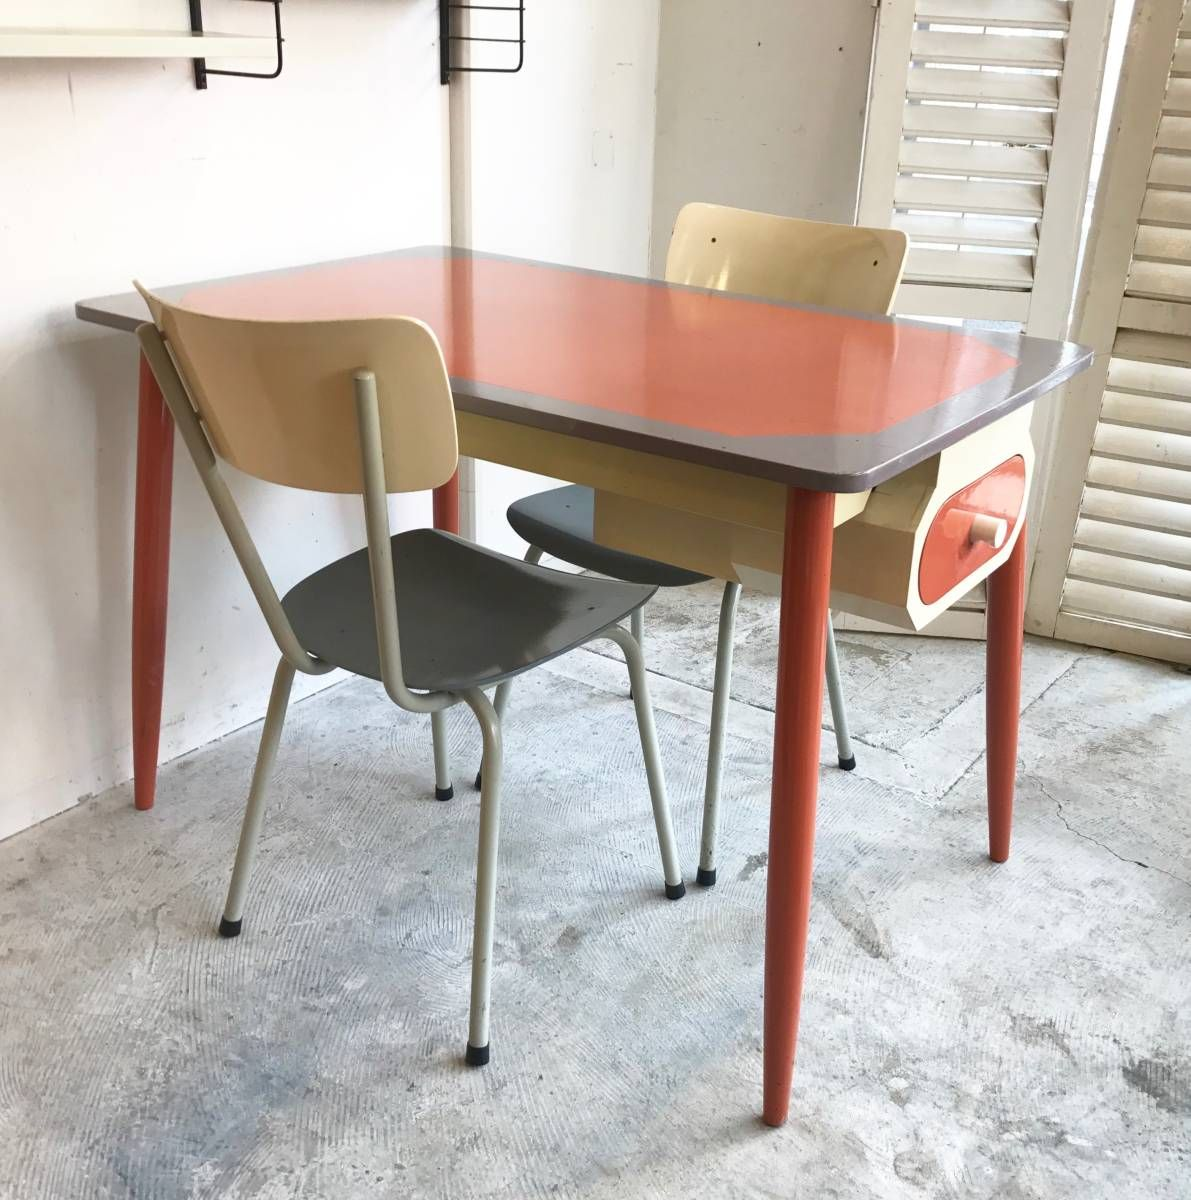 Paint Dining Table with Drawer オランダ ヴィンテージ 北欧 ダッチデザイン_画像1